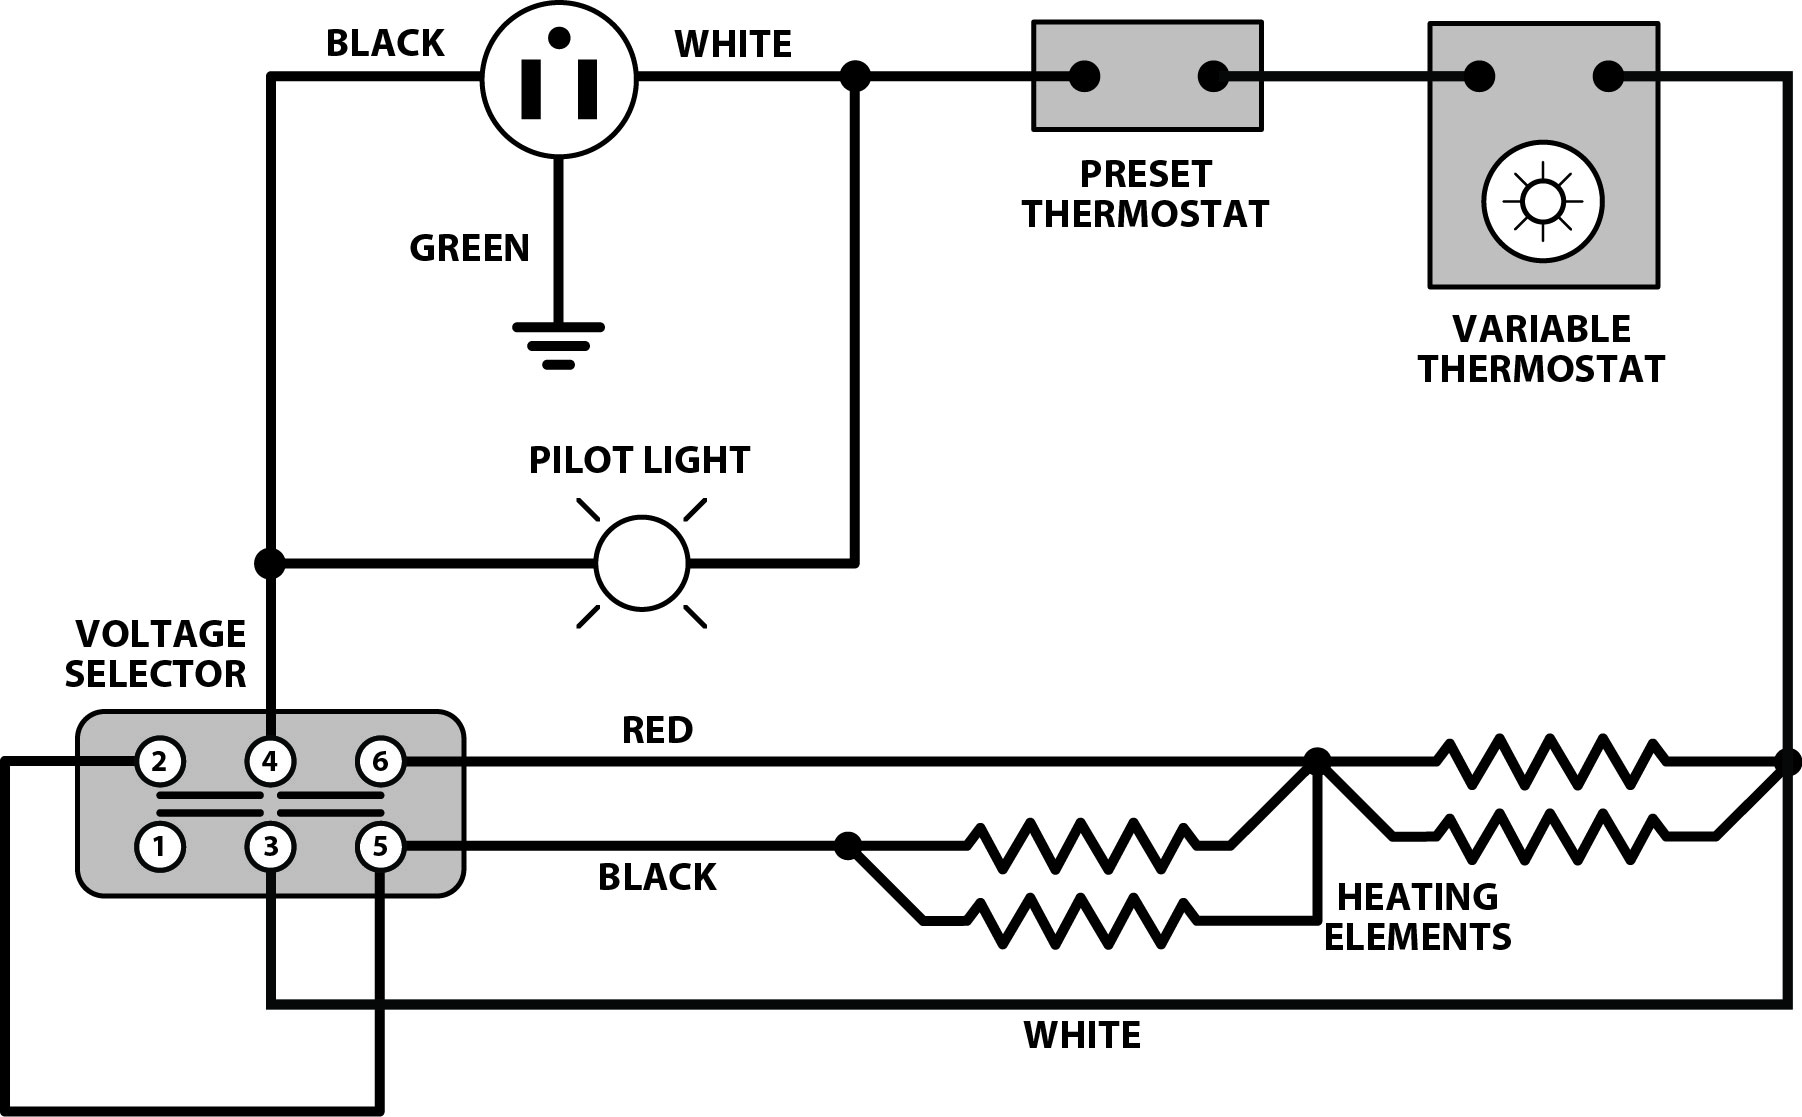 Cont Gas Oven Wiring Diagram Automotive Igniter Control Box Rh 11 Pfotenpower Ev De Basic